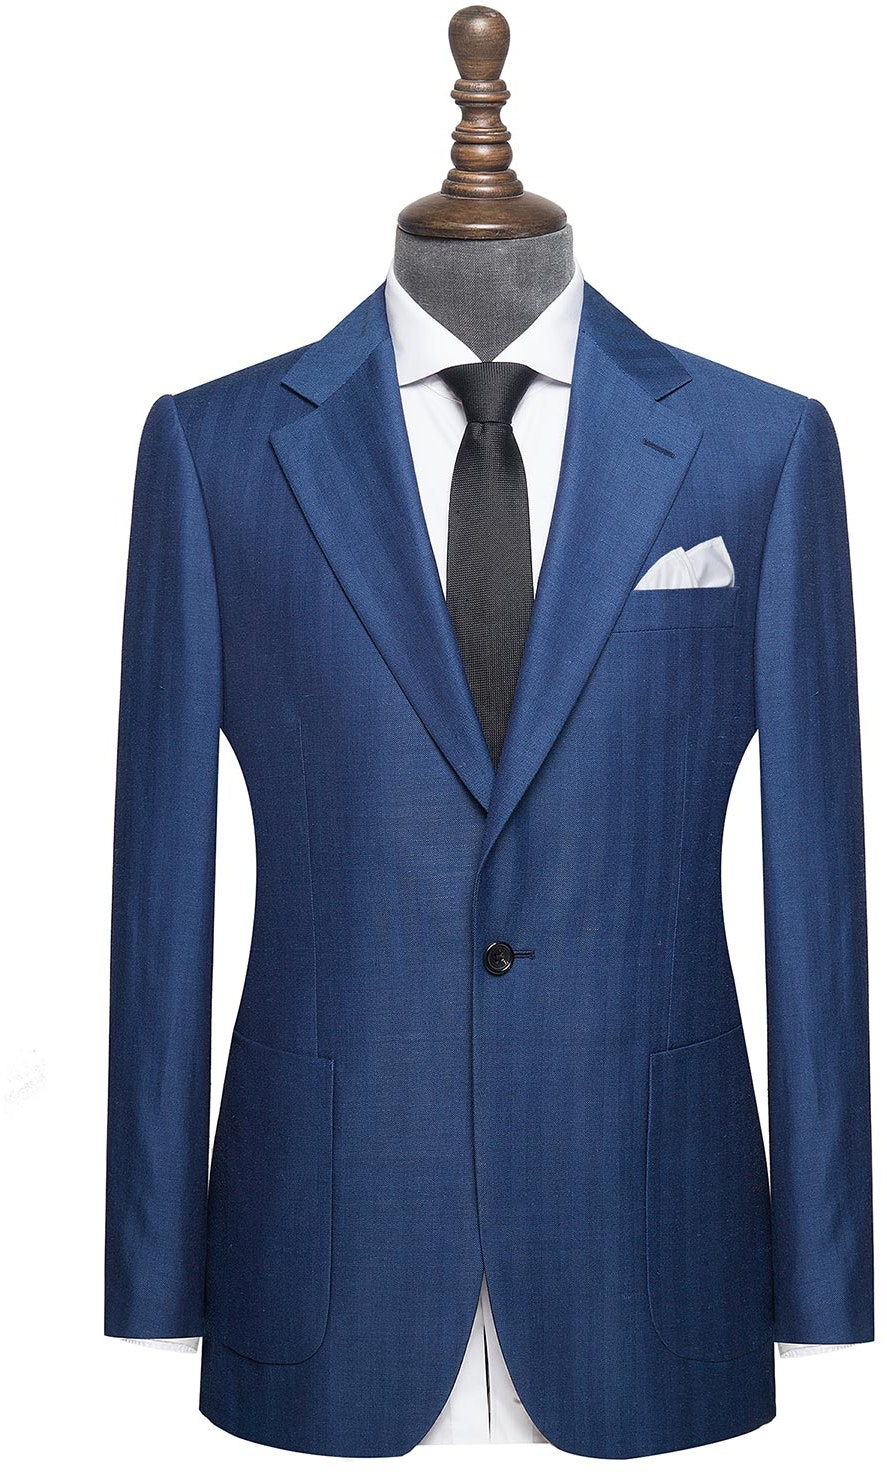 InStitchu Collection The Southampton mens suit